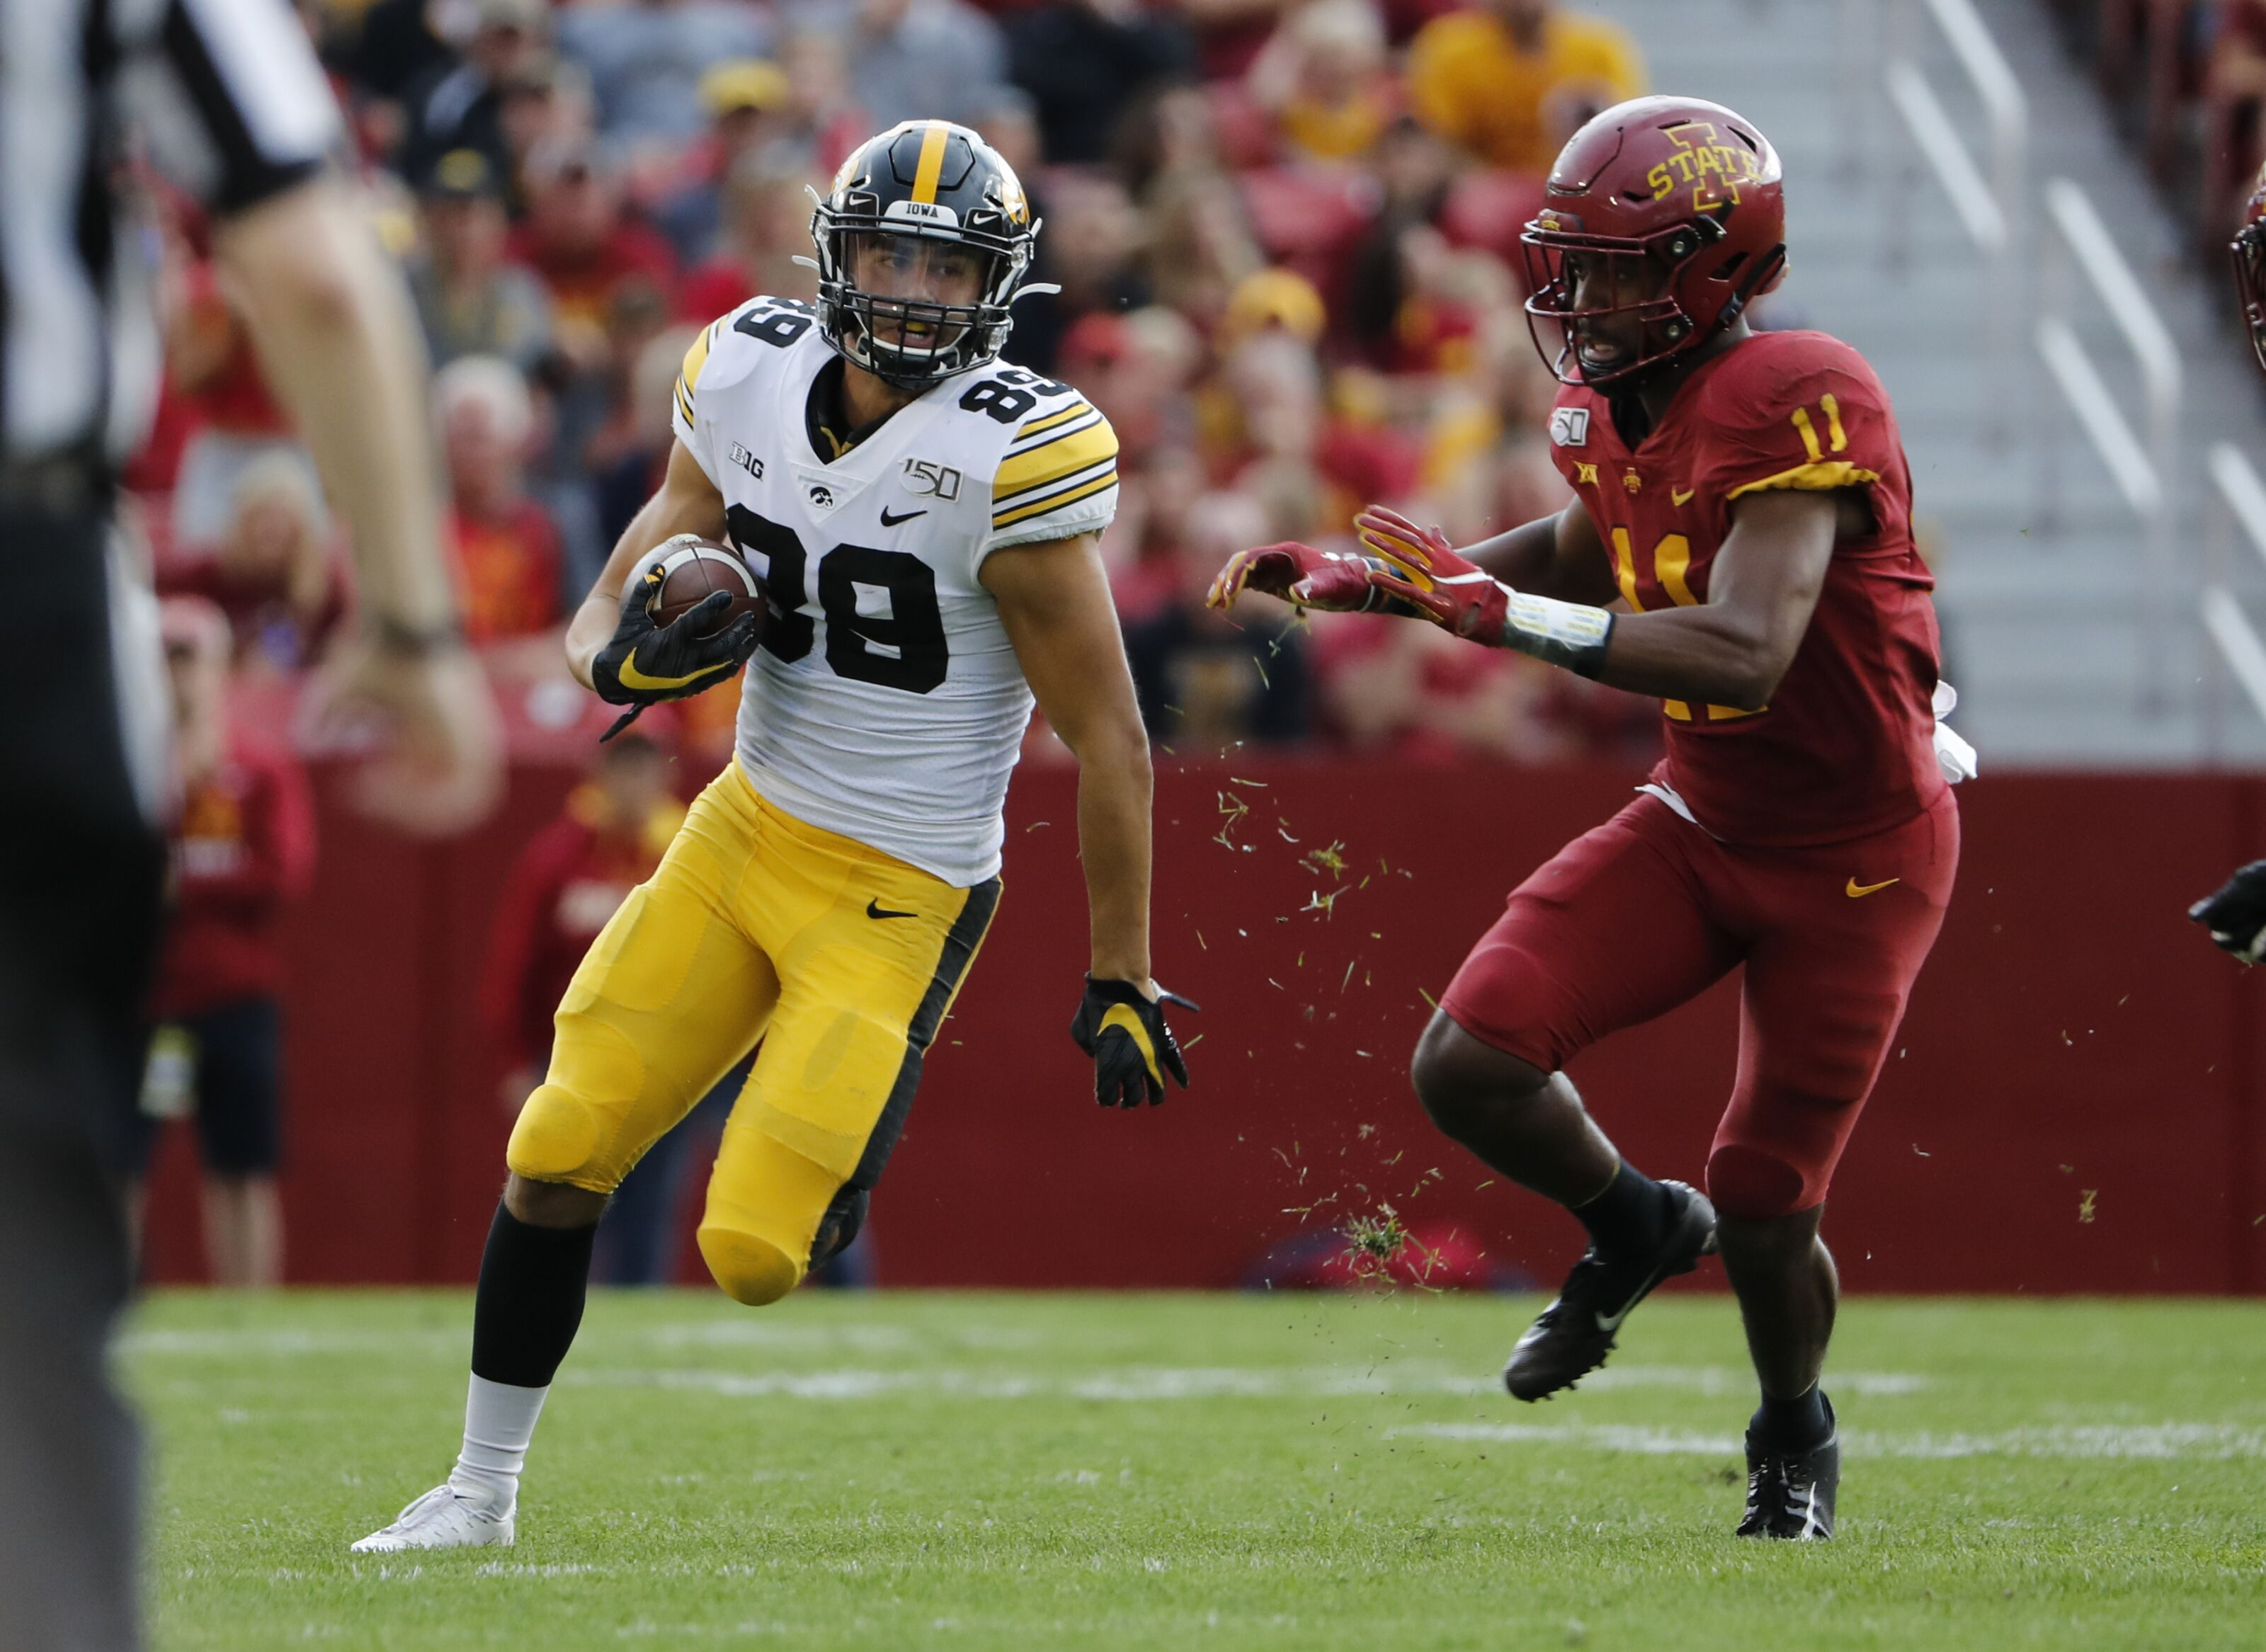 Iowa football: 3 reasons the Hawks could make the CFB Playoffs in 2019